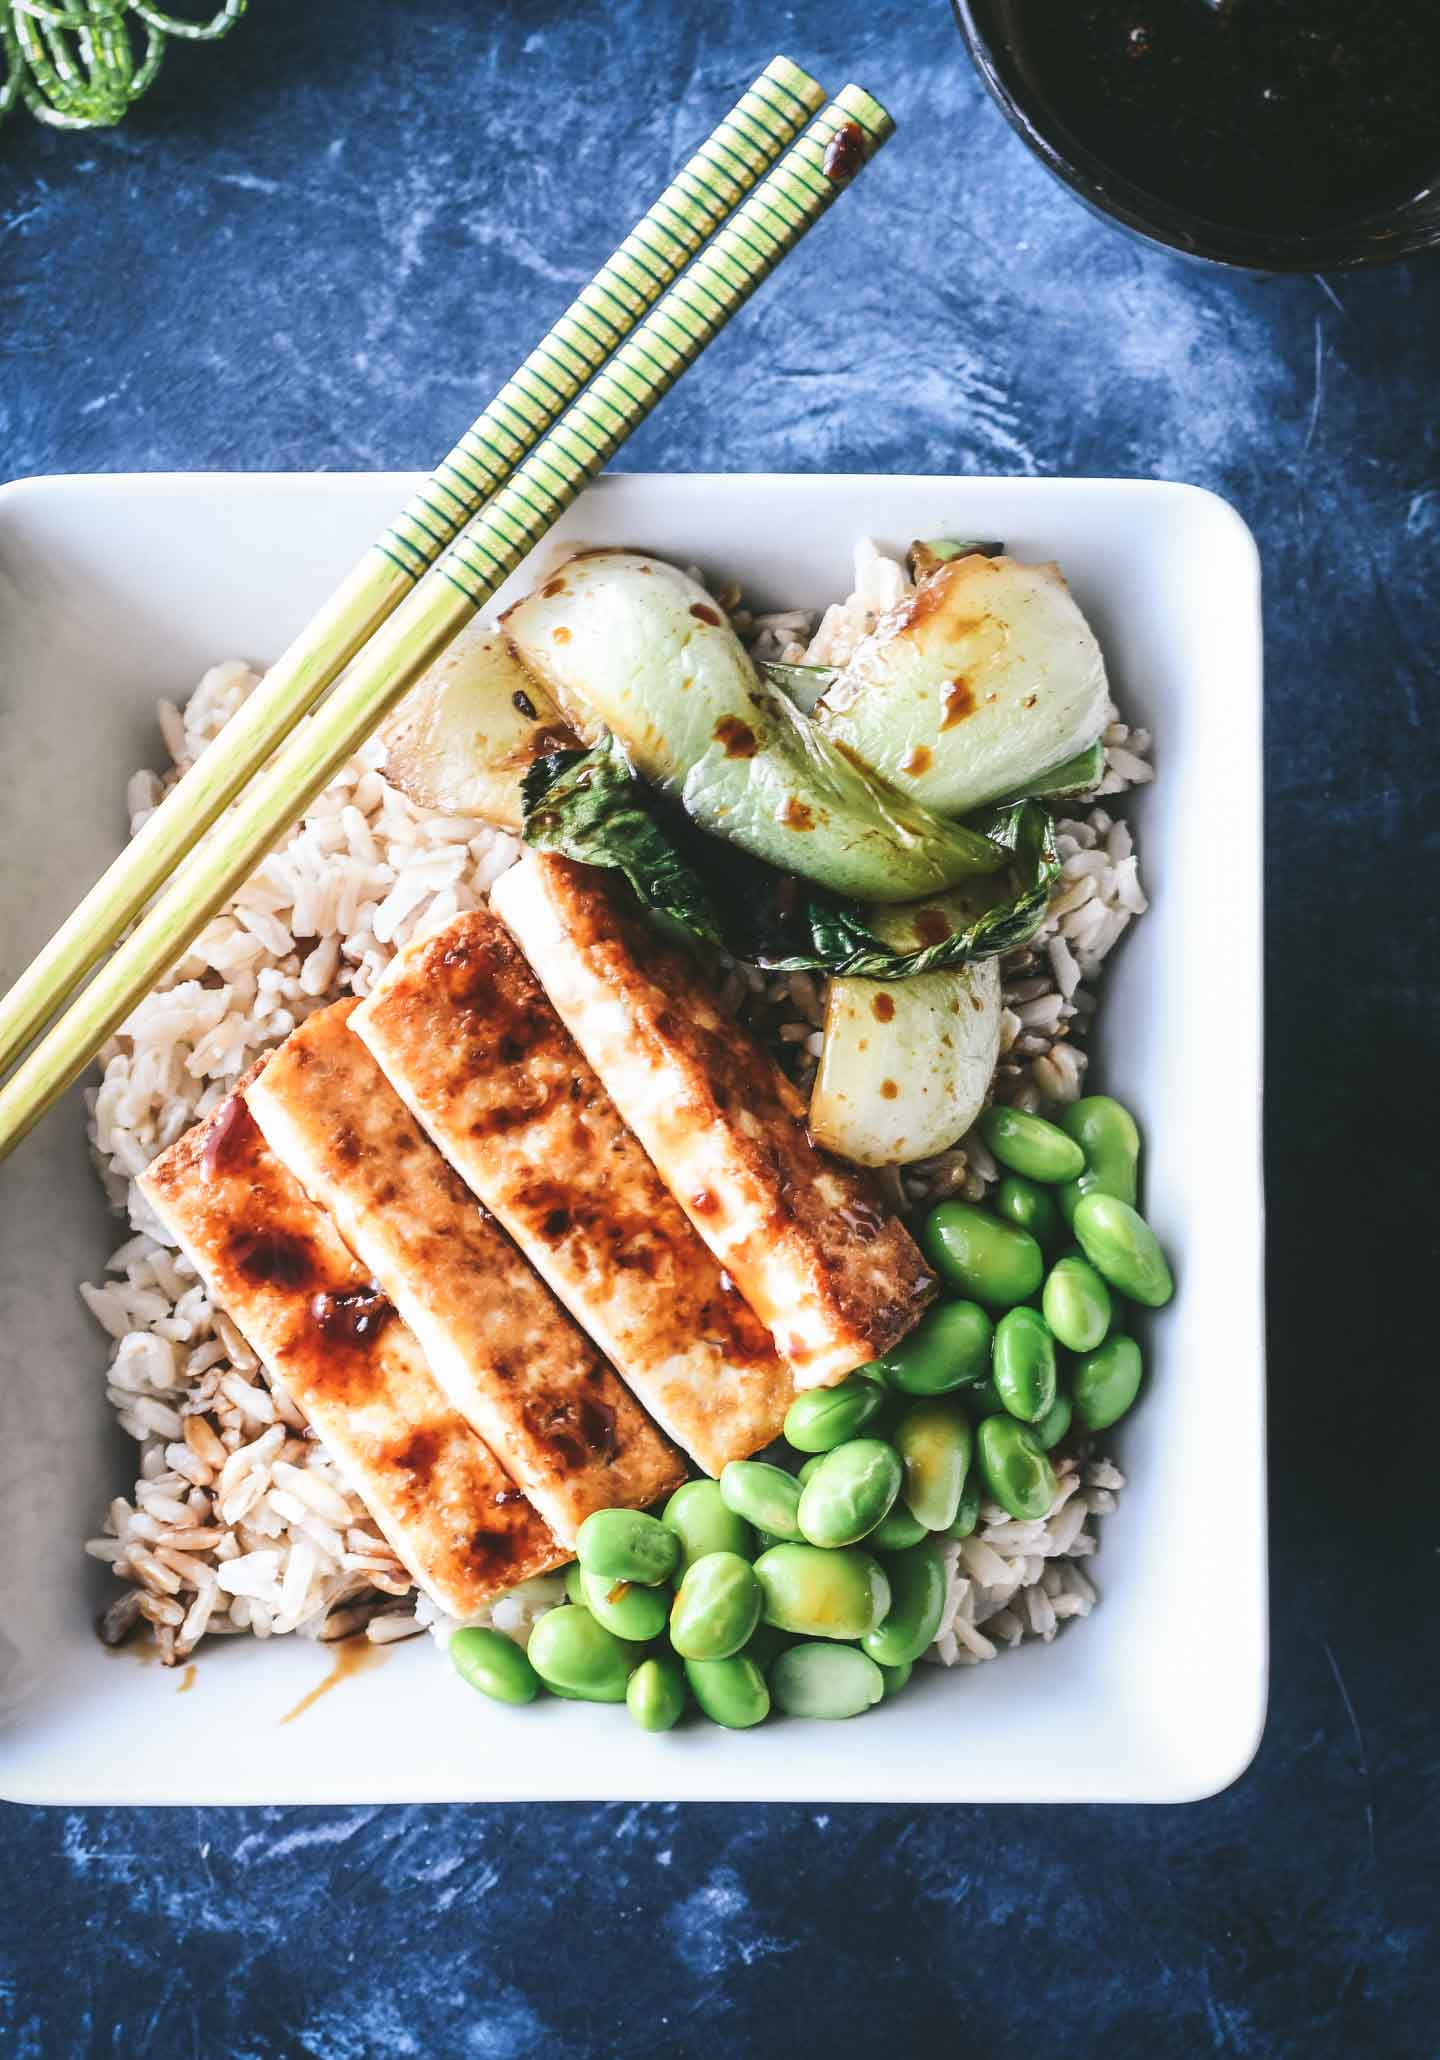 Brown rice topped with crispy tofu, edamame and sautéd bok choy